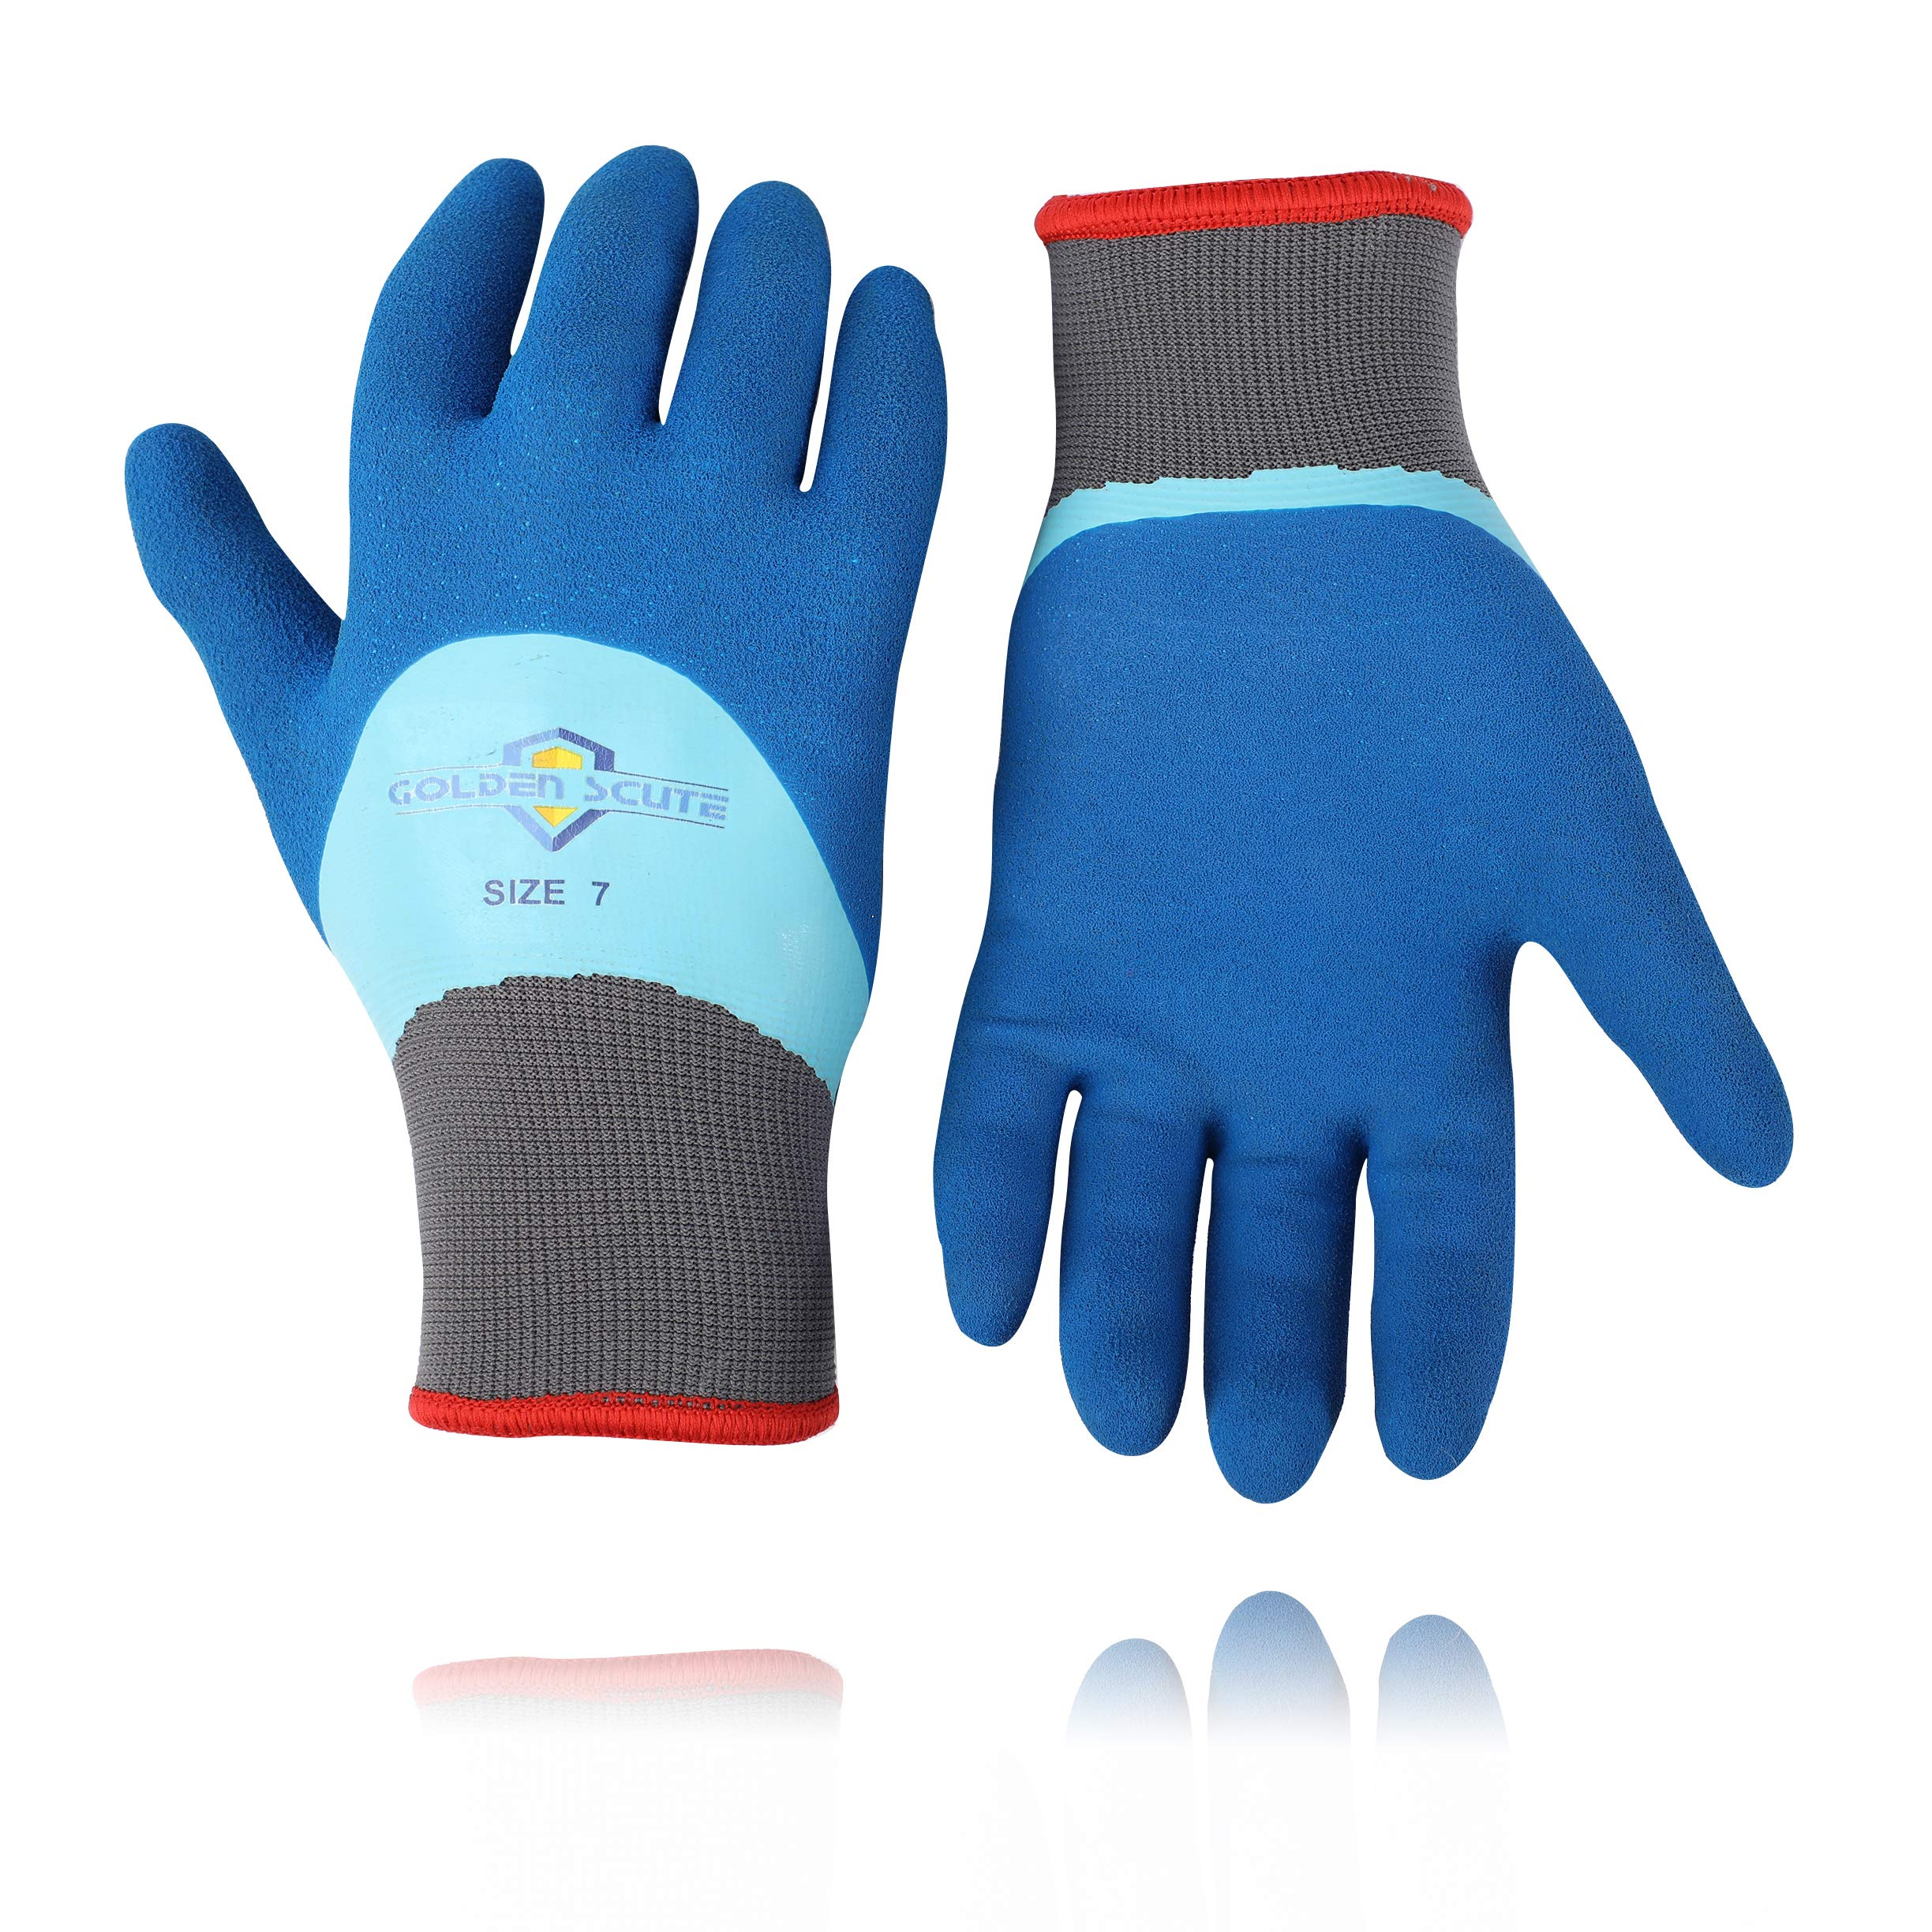 Golden Scute Freezer Winter Work Gloves,Fleece-Lined with Tight Grip Palms -Cold Temperatures, 6 pairs (Size 7,Small)